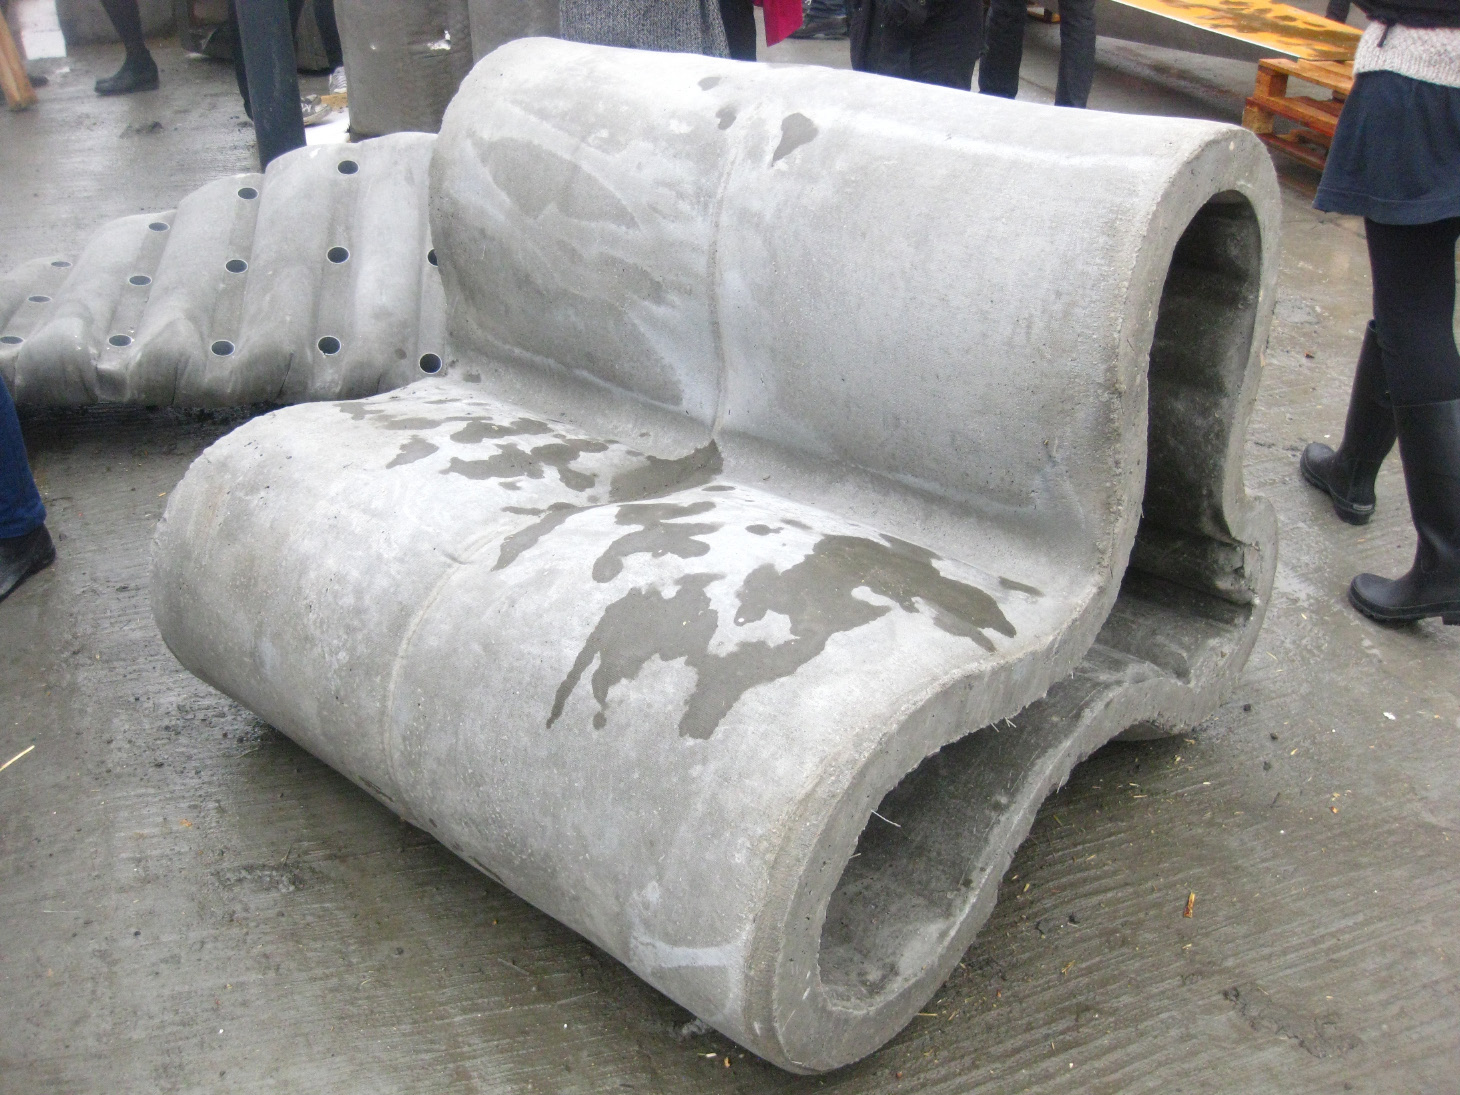 Concretely Concrete Benches Cast In Fabric